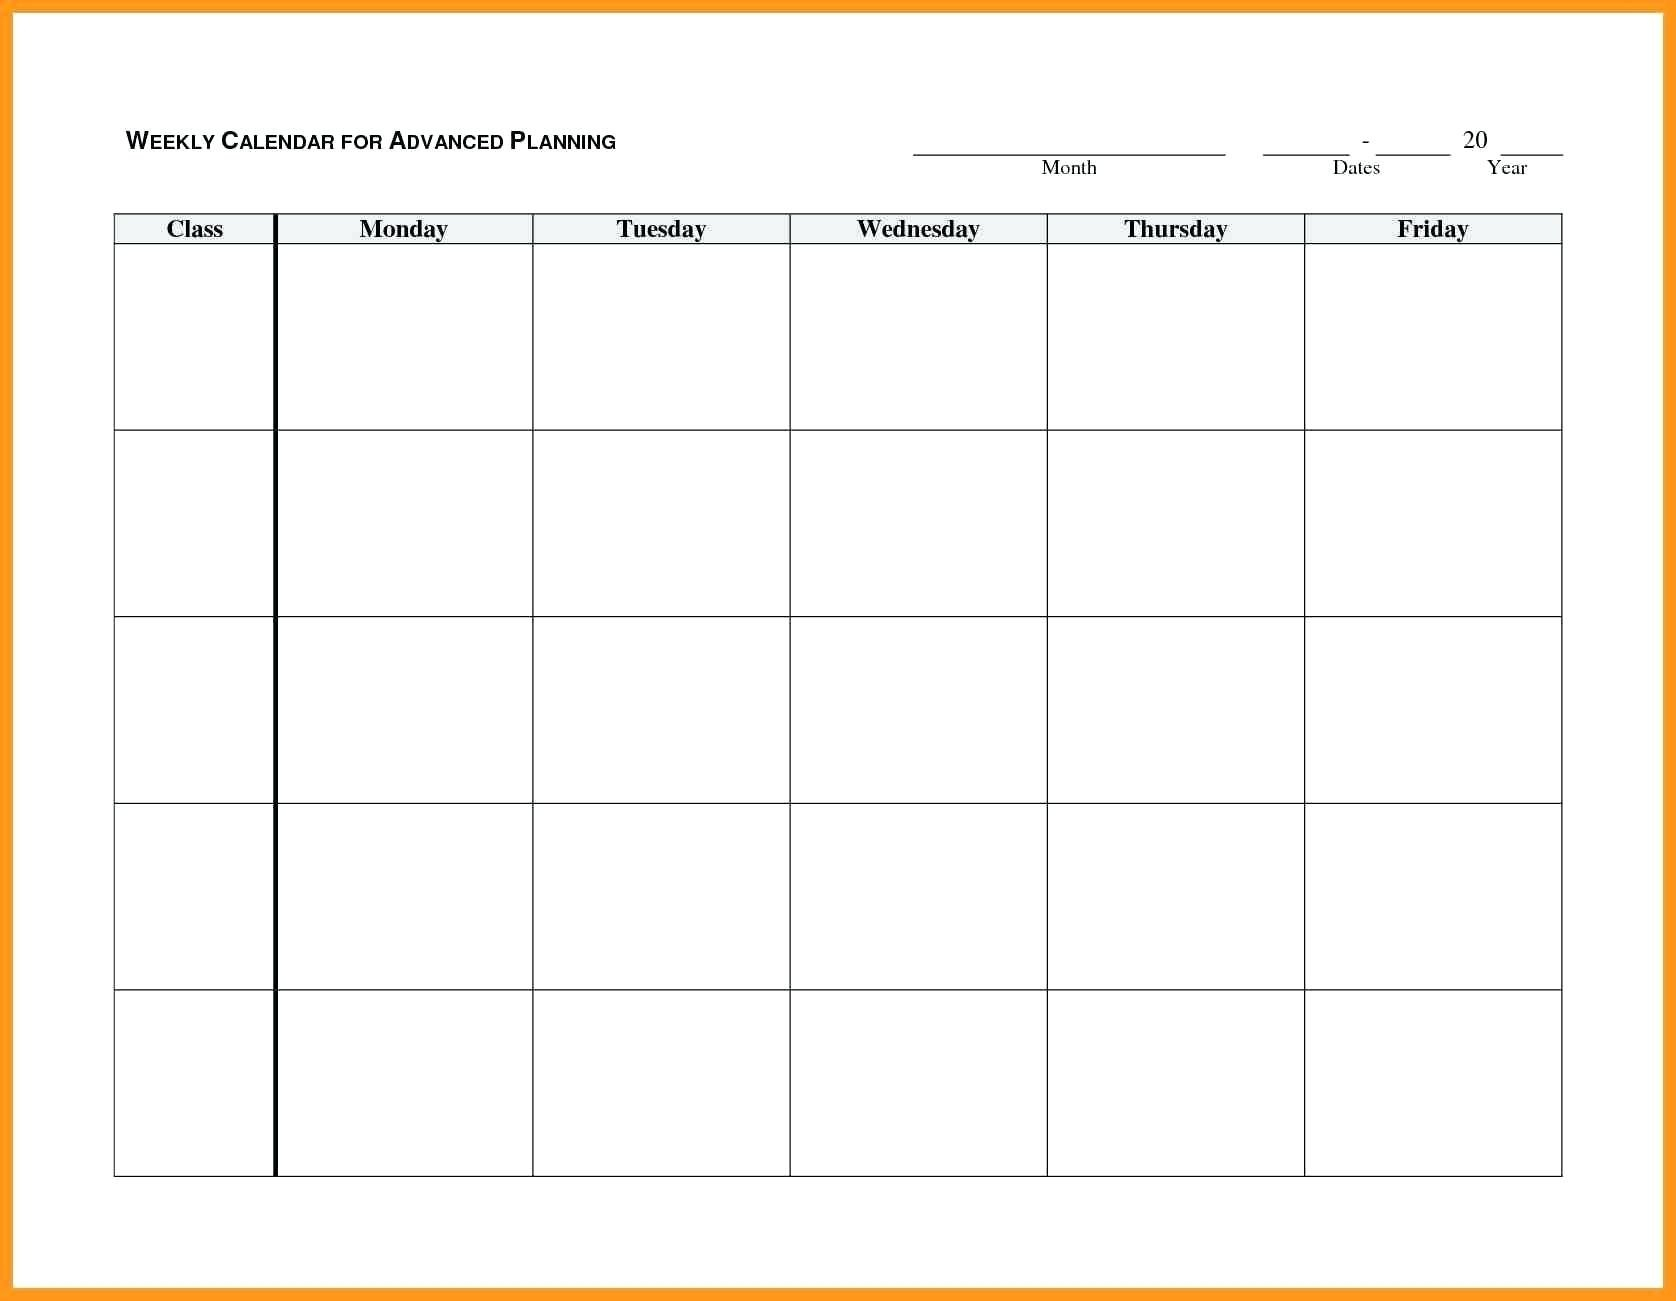 Monday Through Friday Planner Template - Calendar Free Printable Weekly Schedule Monday-Fridays